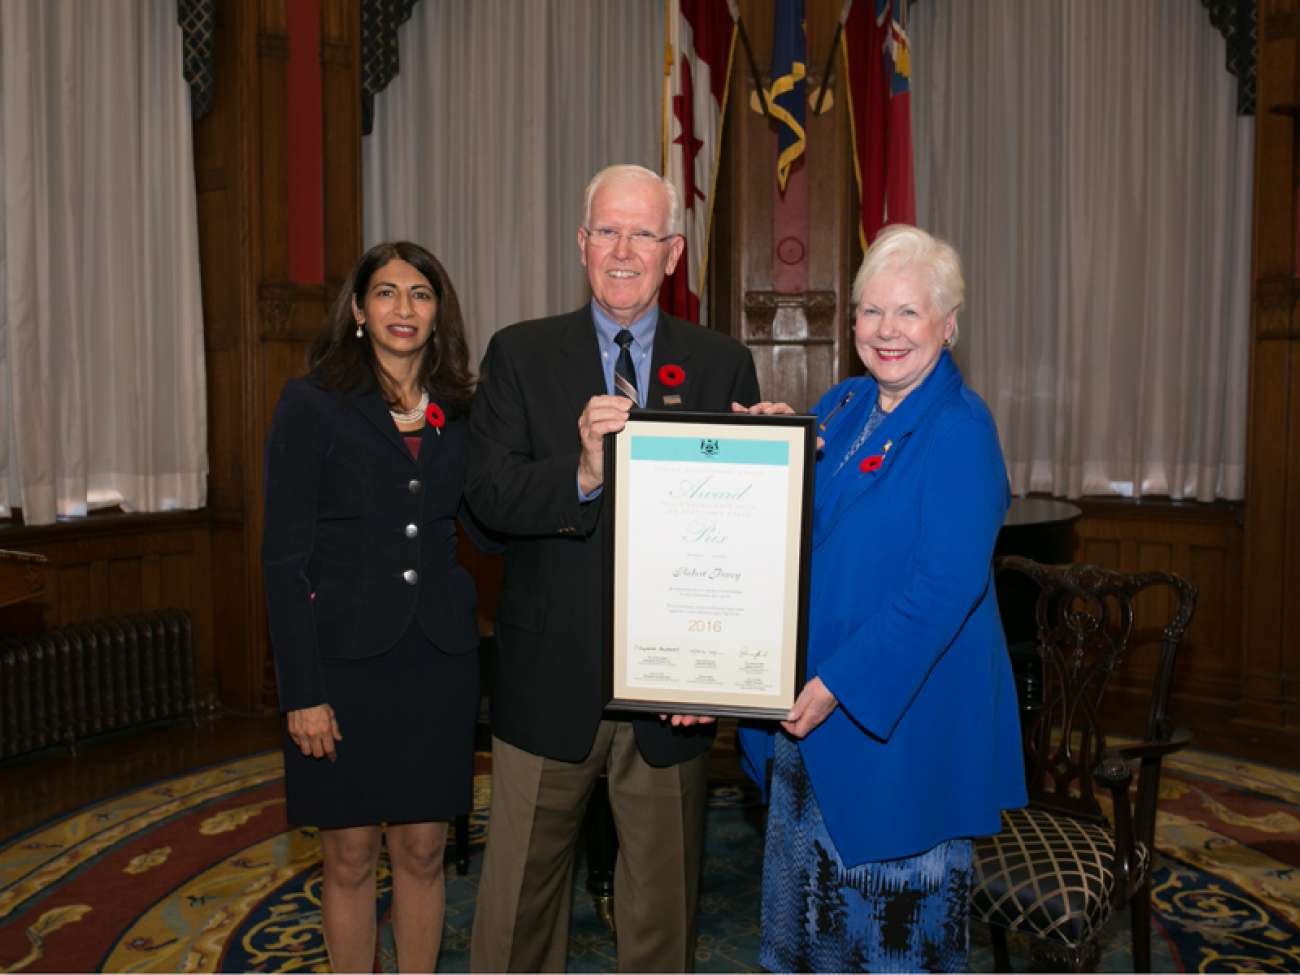 Robert Povey receives his award from the Hon. Dipika Damerla, Minister Responsible for Seniors Affairs (left) and the Hon. Elizabeth Dowdeswell, Lieutenant Governor of Ontario (right). Photo courtesy of the Government of Ontario.